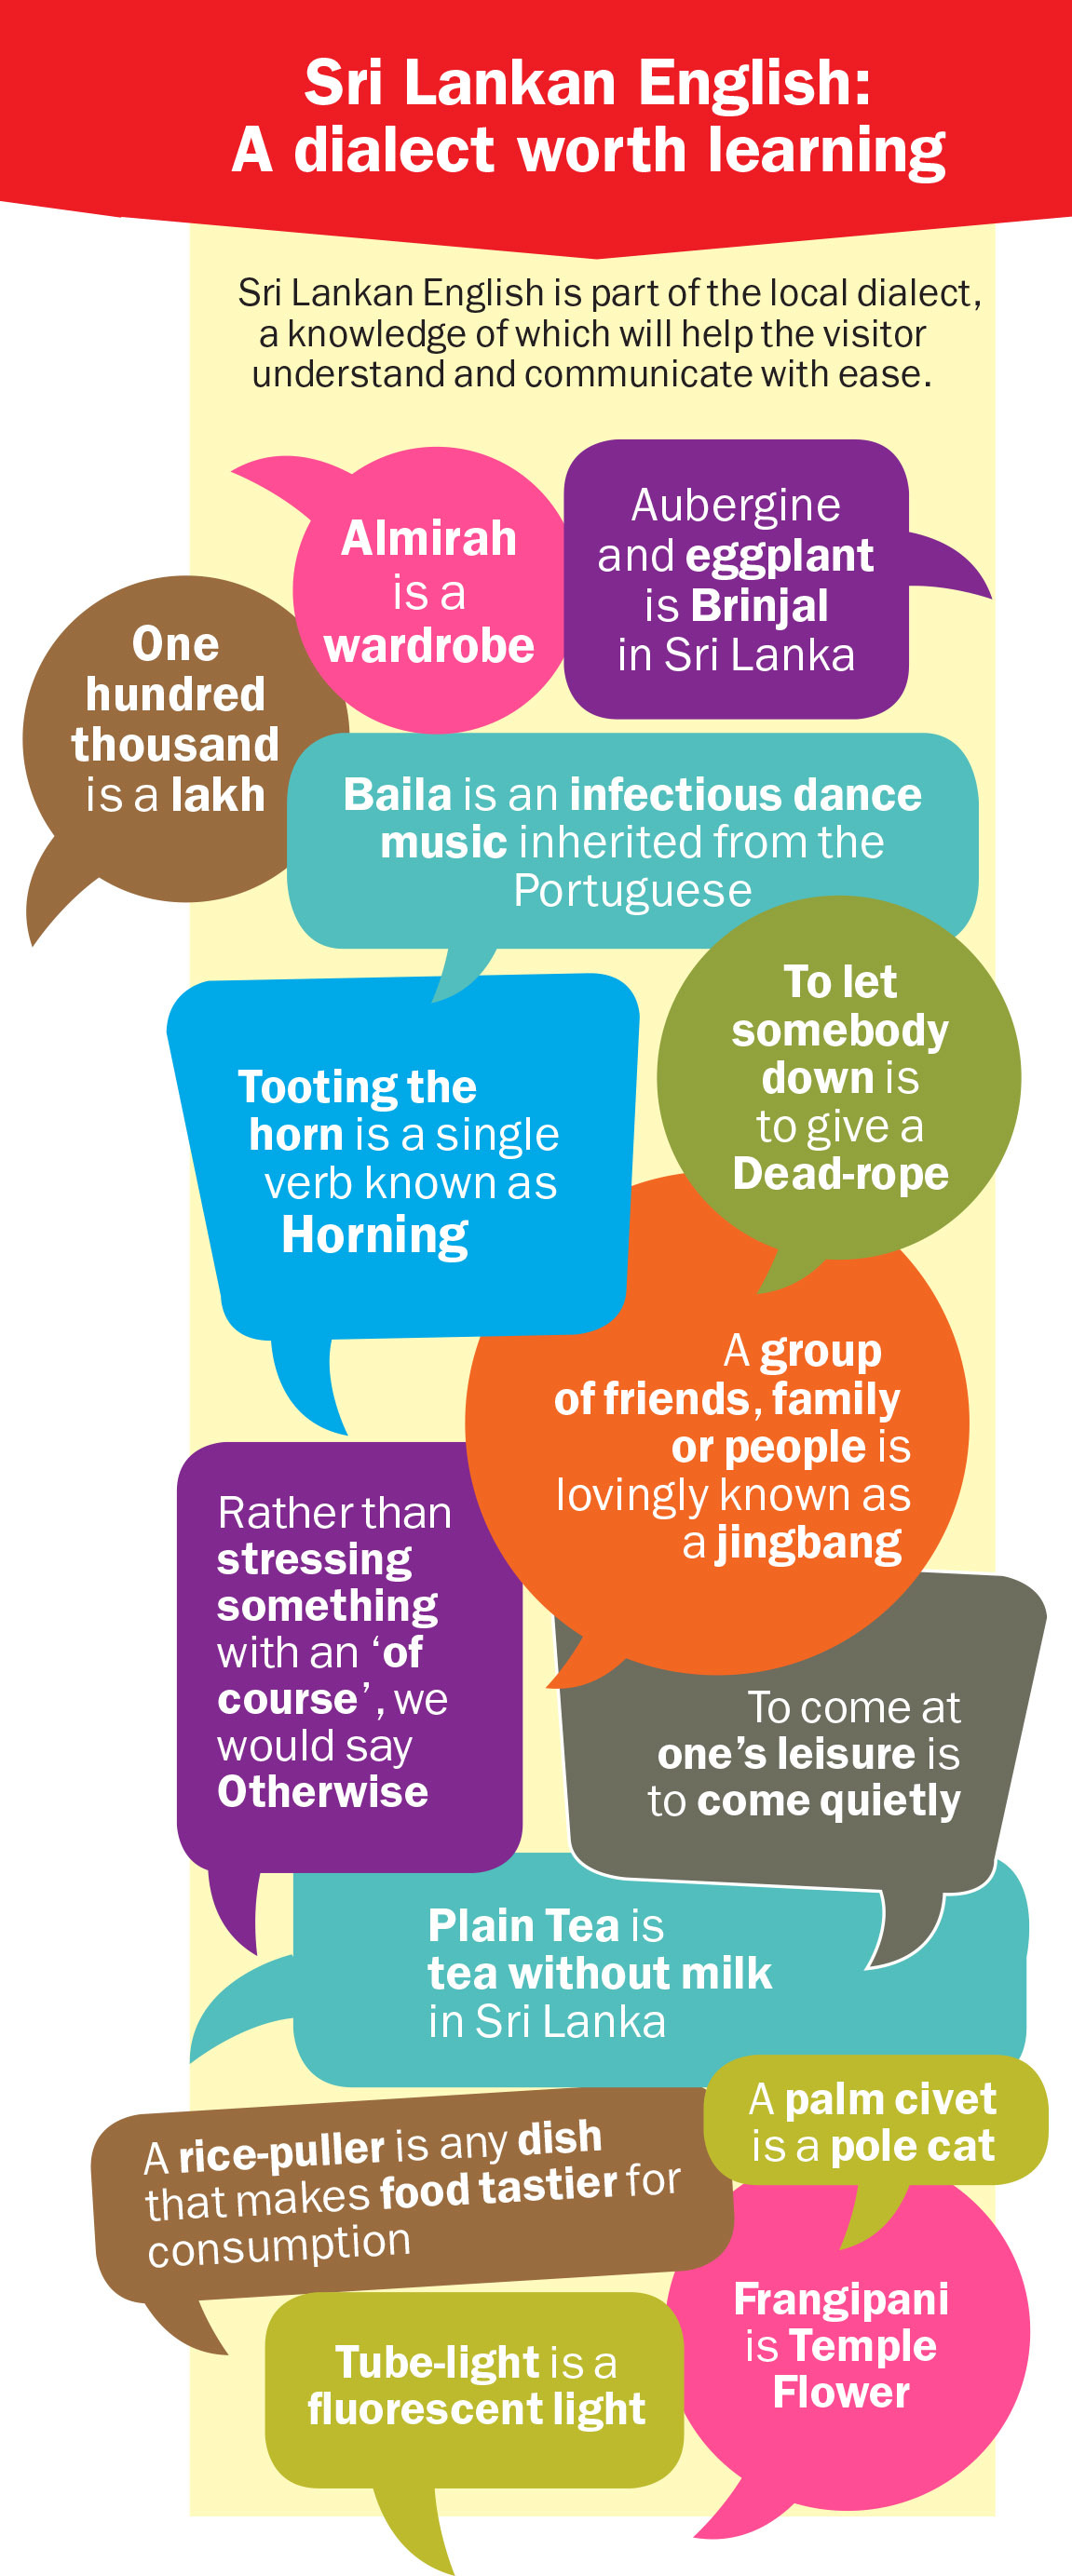 Sri Lankan English: A dialect worth learning